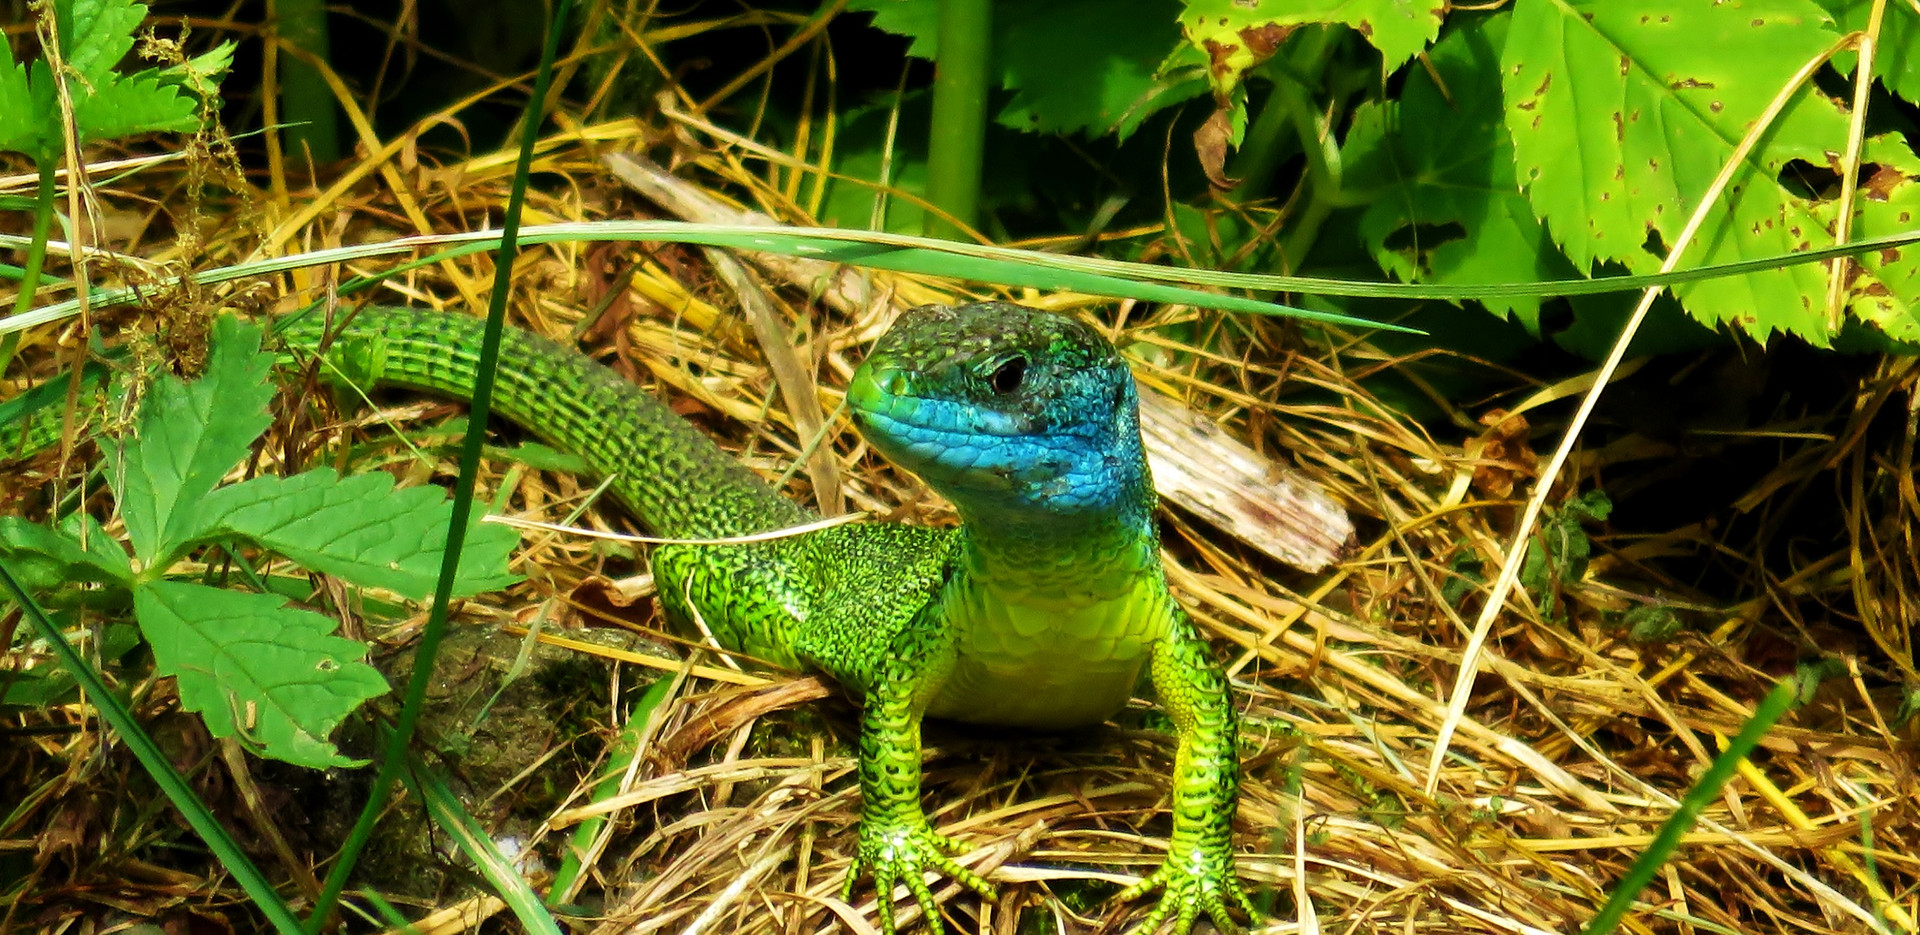 Western green lizard (lacerta bilineata), adult male, with blue facial colors typical for mating season, Malcantone, Ticino, May 2015.jpg